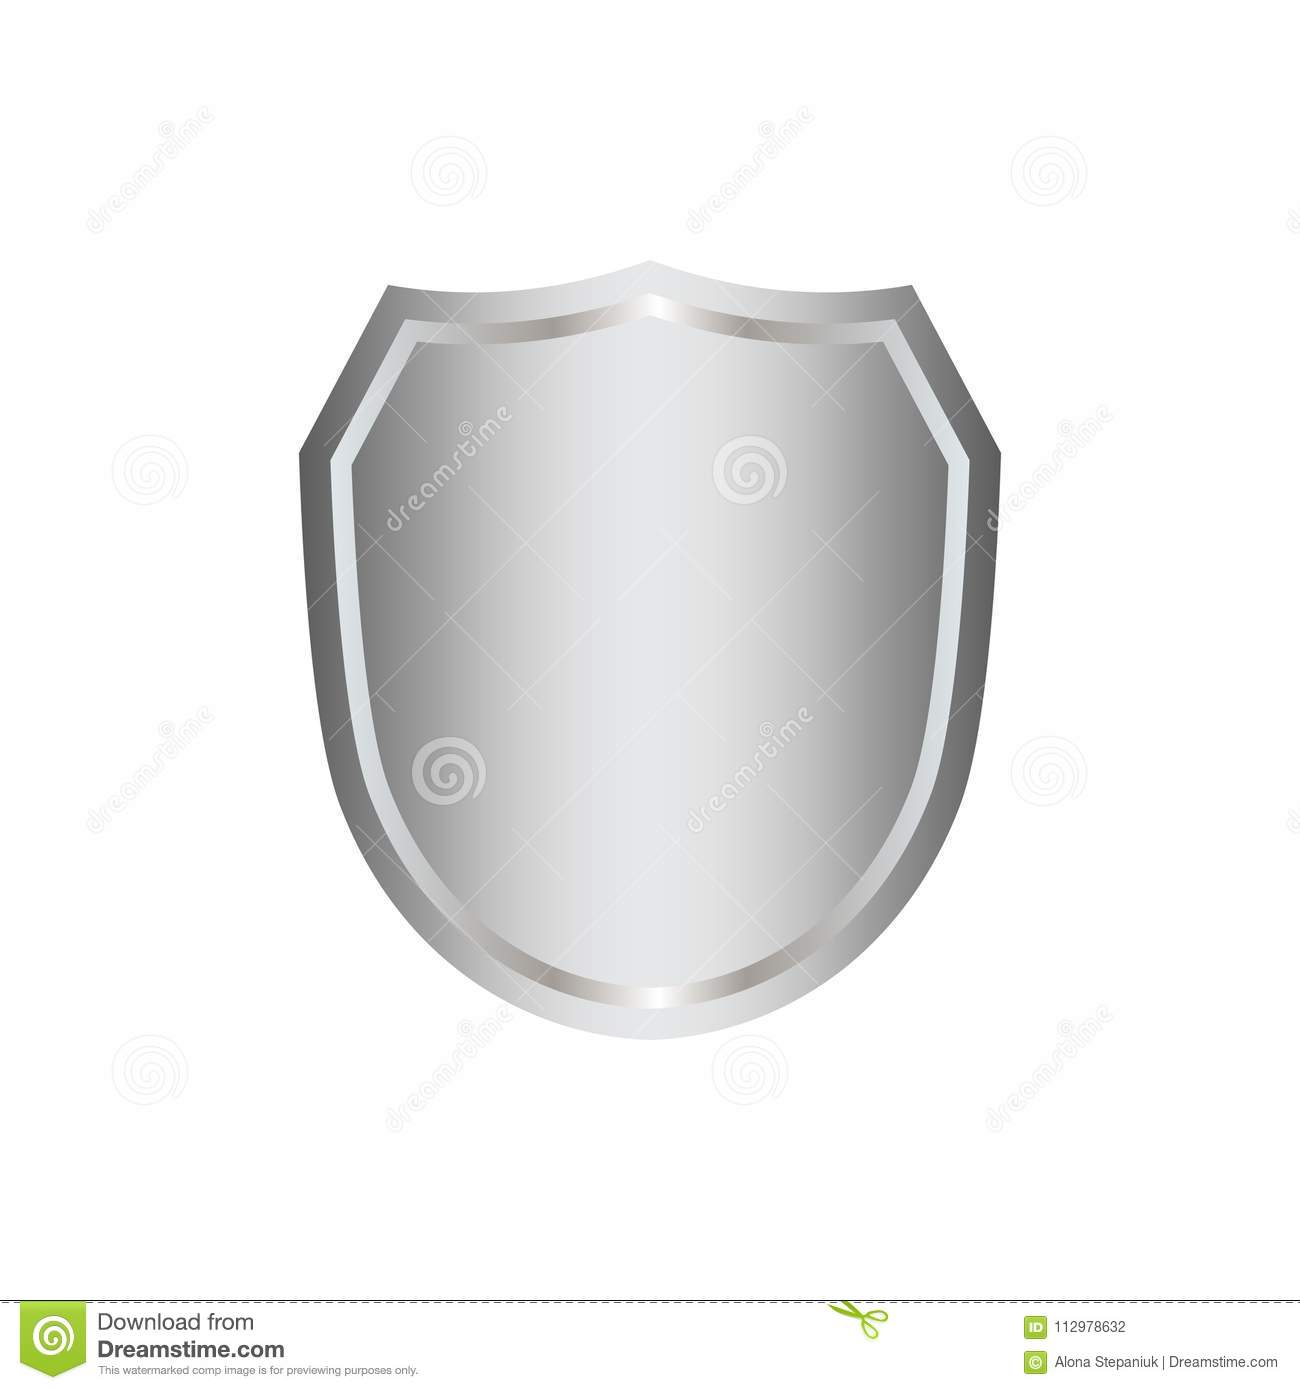 Silver shield shape icon. 3D gray emblem sign isolated on white background. Symbol of security, power, protection. Badge